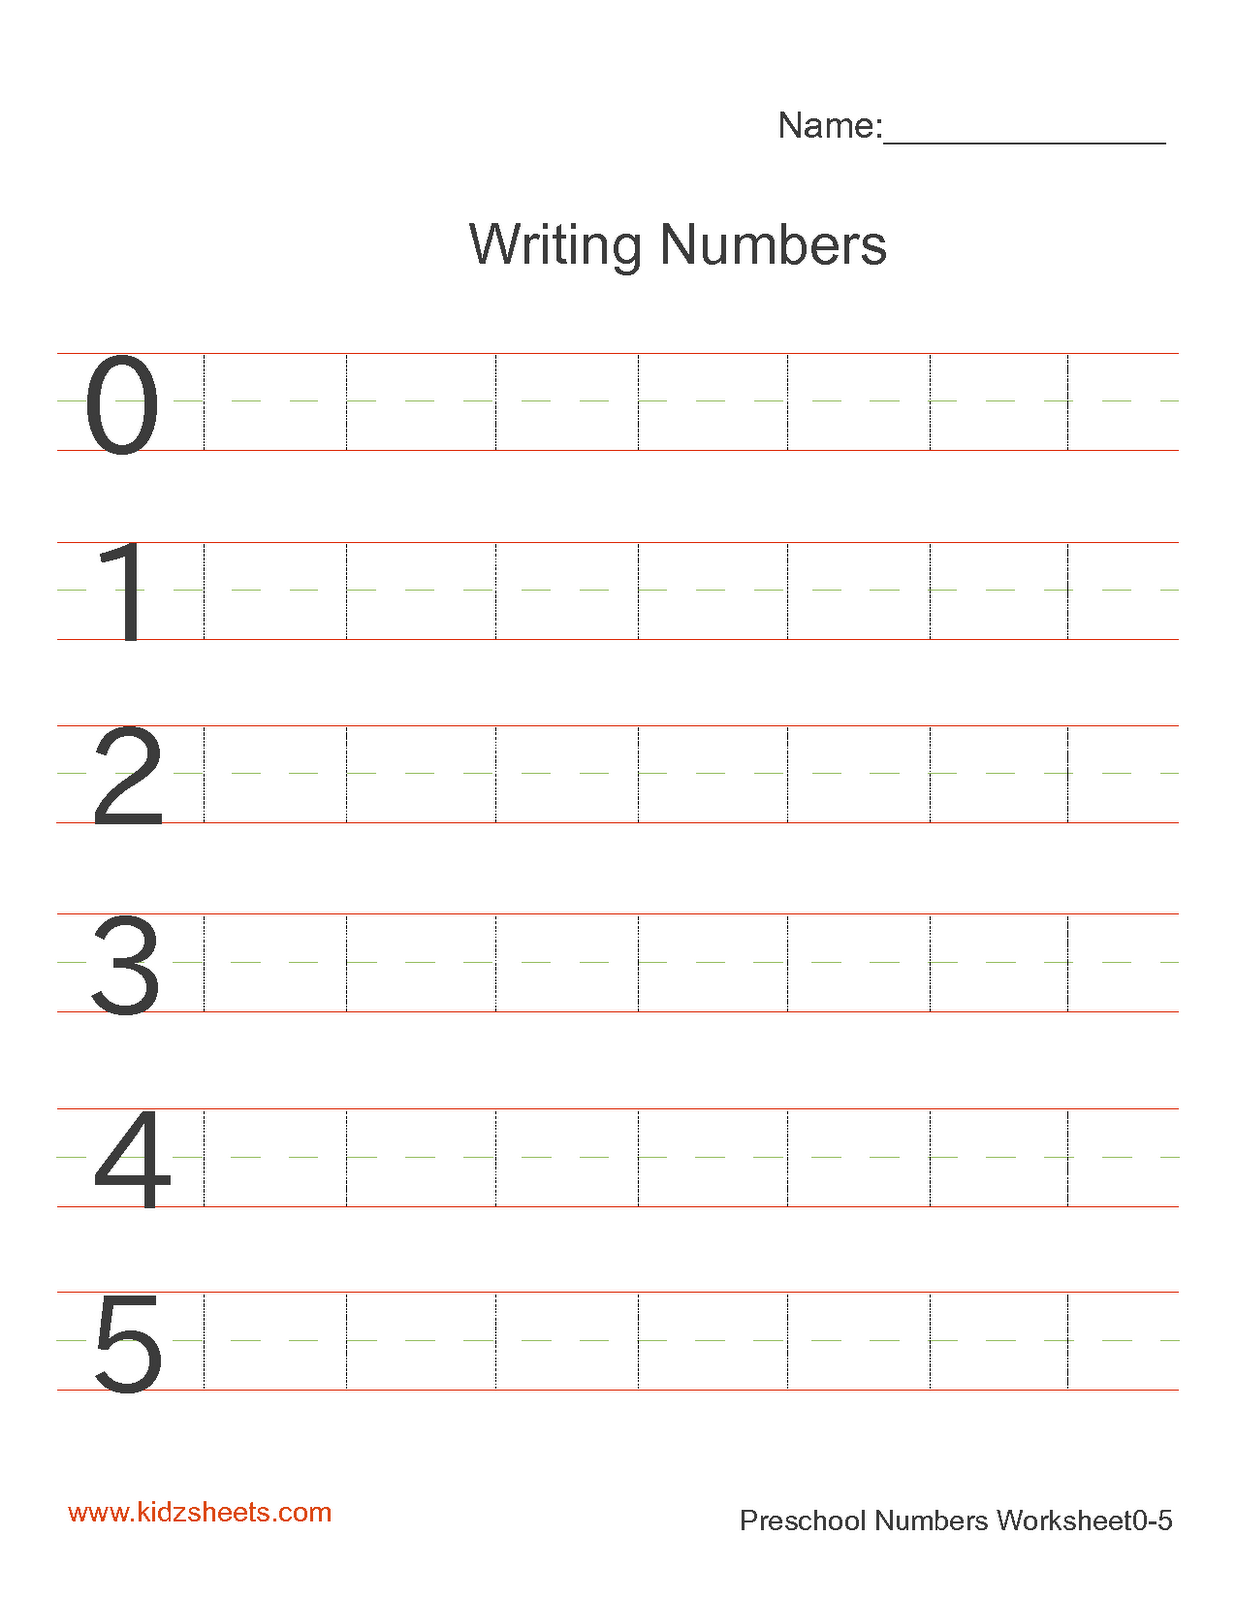 preschool writing practice Name writing printables and practice ideas june 28 prek-k printables tagged with: name writing practice, name writing printables, preschool name writing.